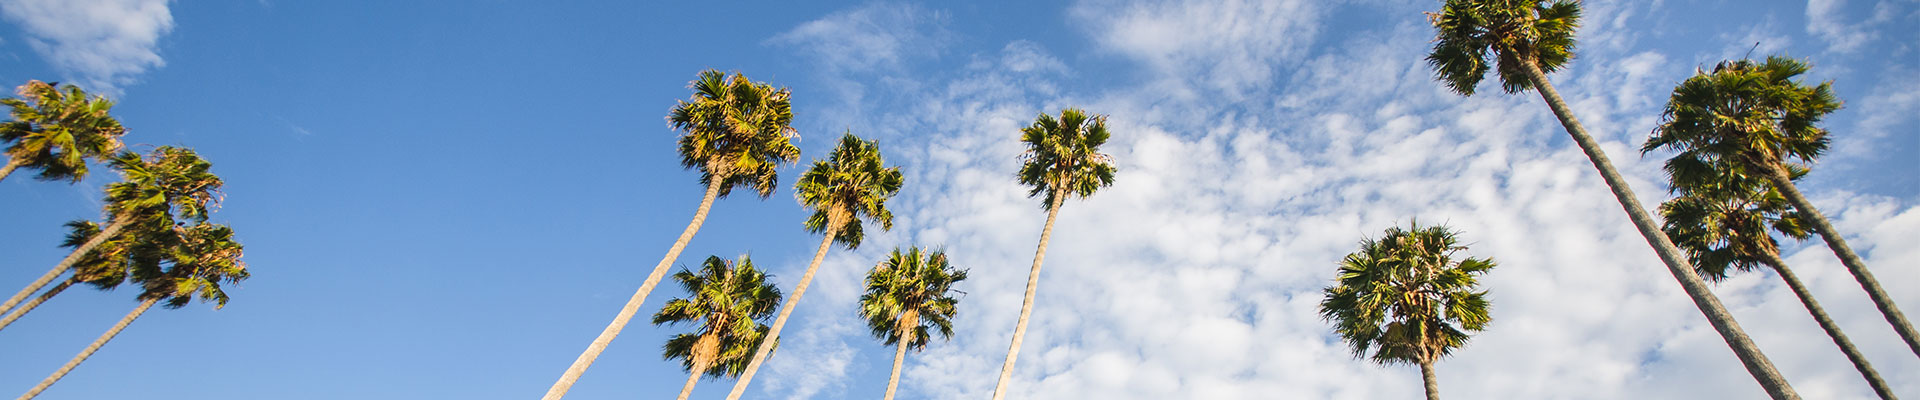 Fantasy RV Tours: 6 Day Palm Springs Valley Bash (06URRP-040120)